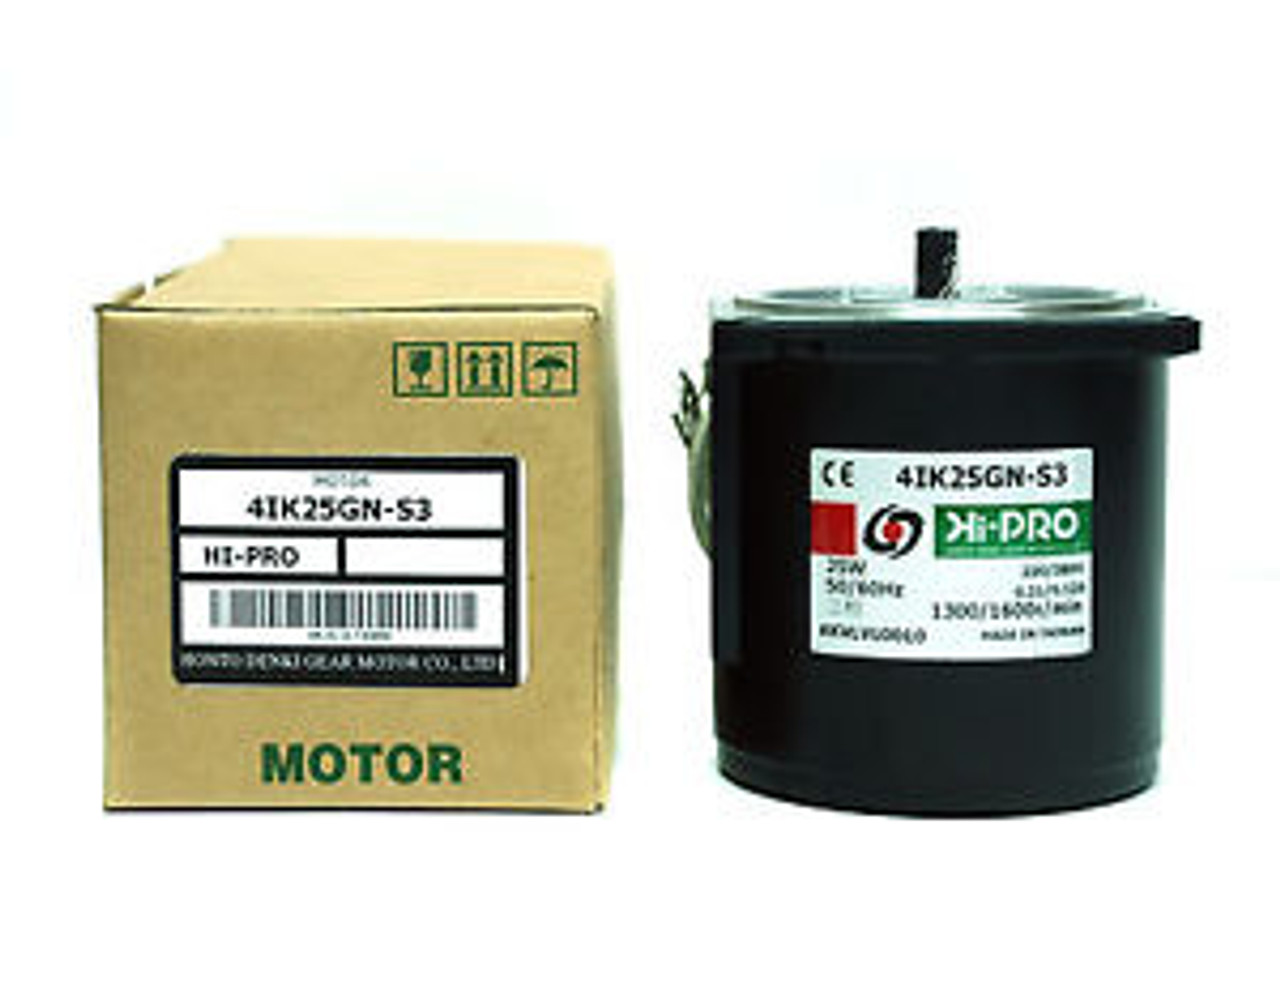 1 AC Induction Gear Motor AC380V 5//60Hz 3φ 25W 4IK25GN-S3 1300//1600rpm 80x80x85m